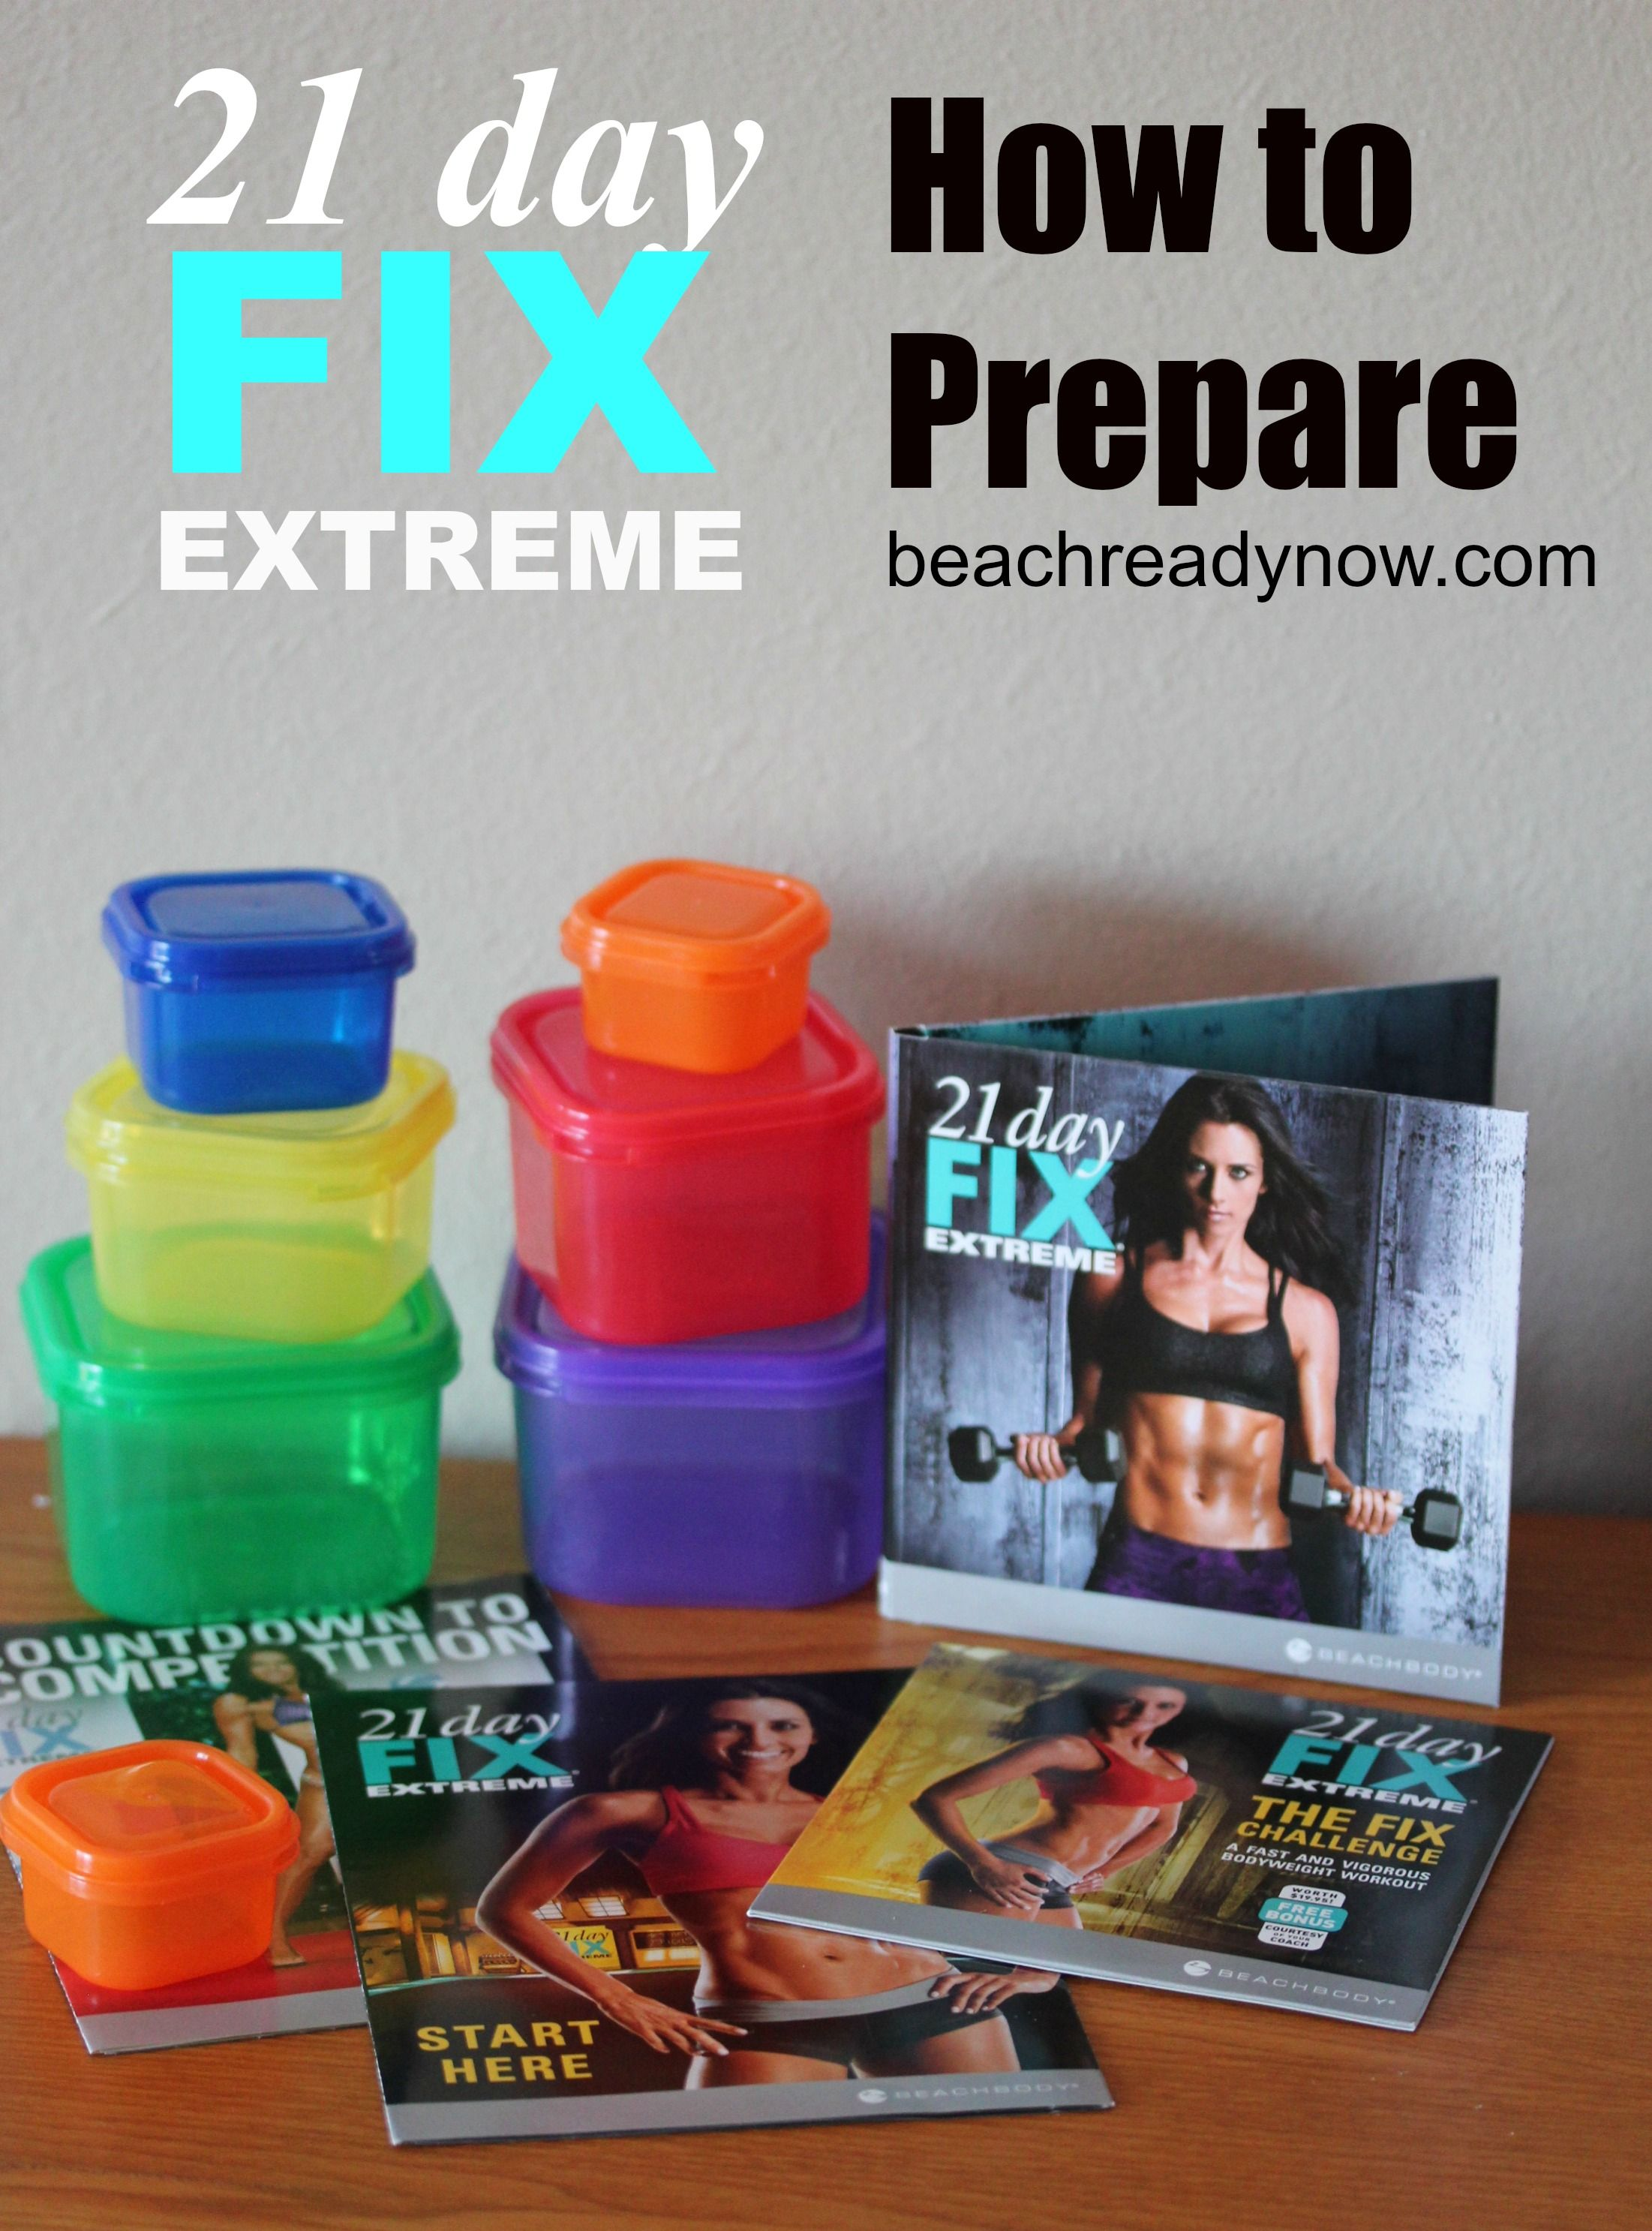 21 Day Fix Extreme: How to Prepare